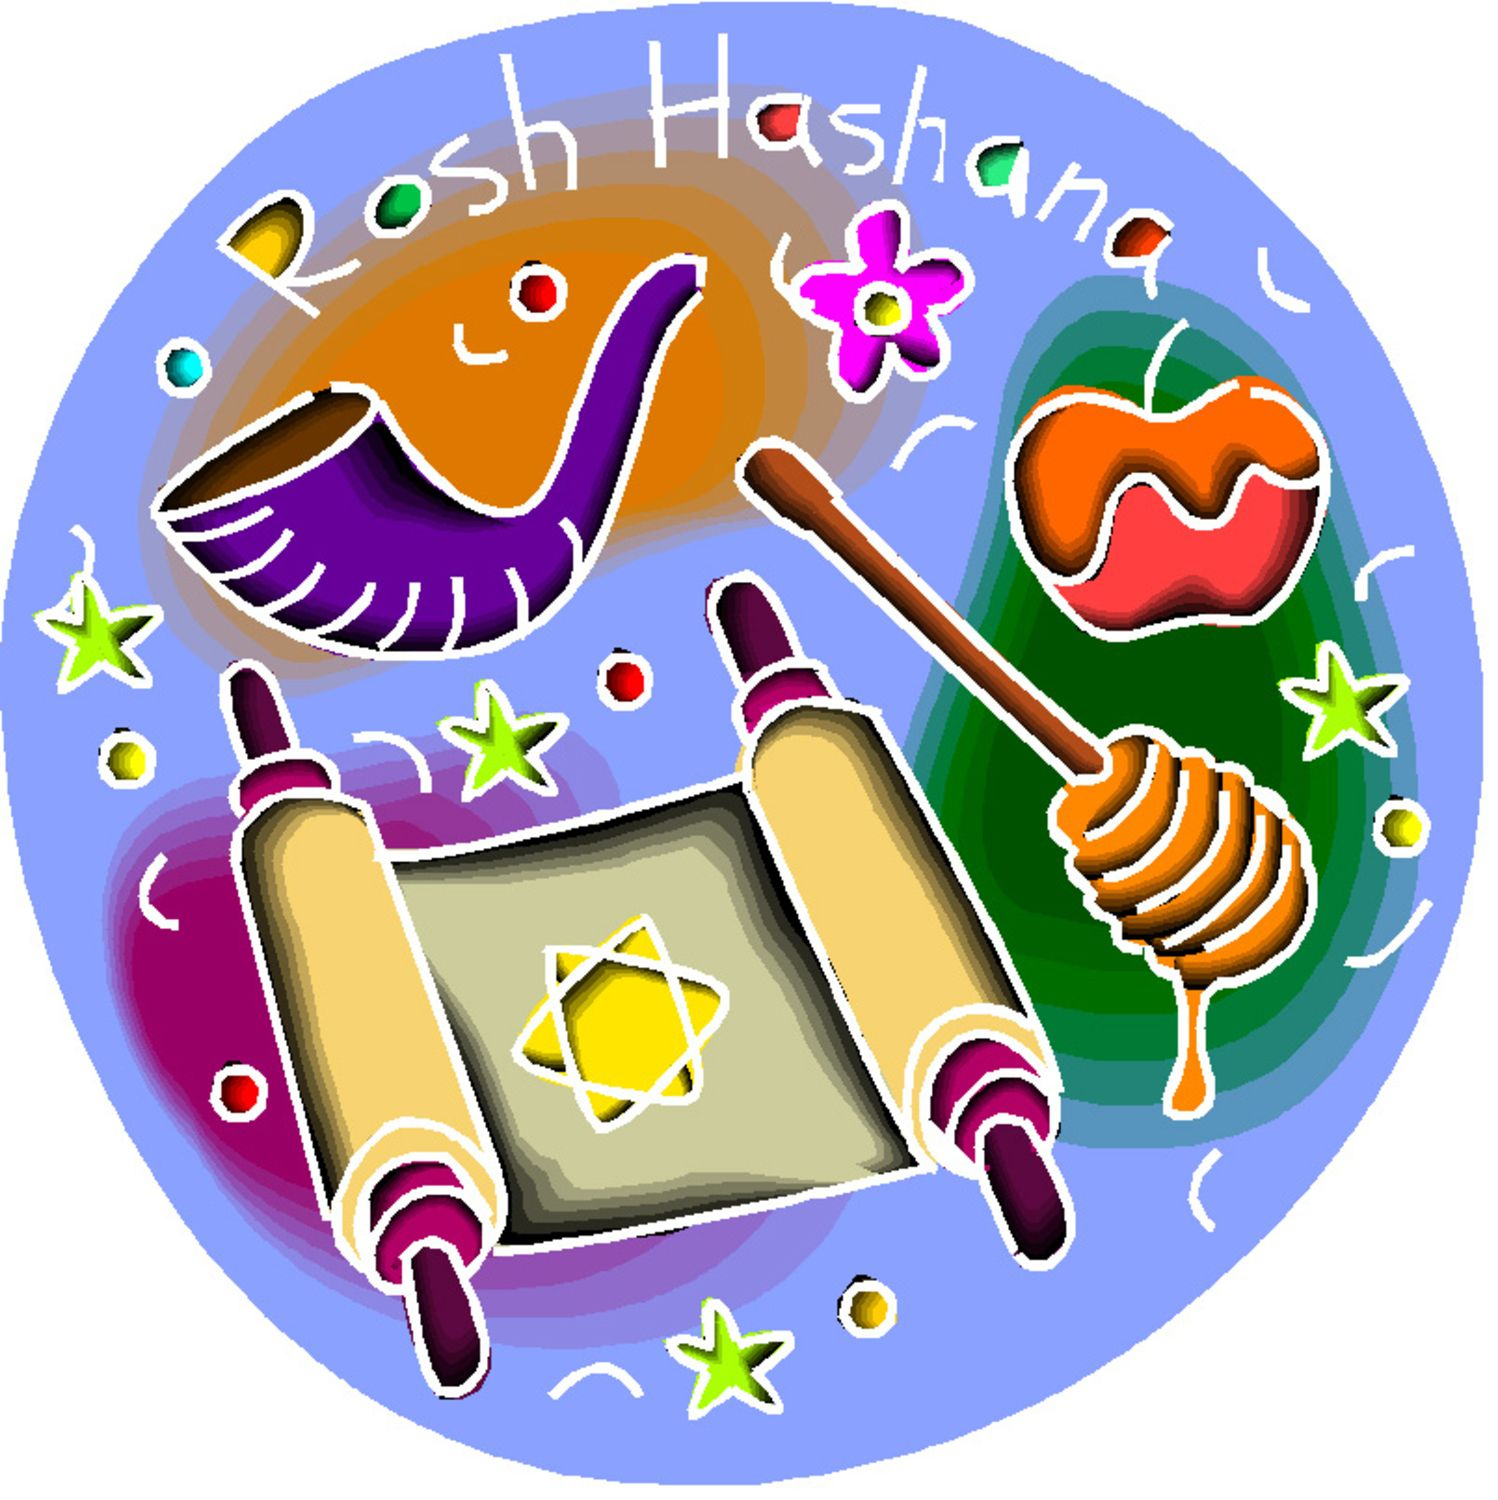 Dont stay stuck this rosh hashana honey judy gruens mirth one of many important and religious holidays celebrated by jews around the world is rosh hashanah which falls on the first day of tishri the first month kristyandbryce Images